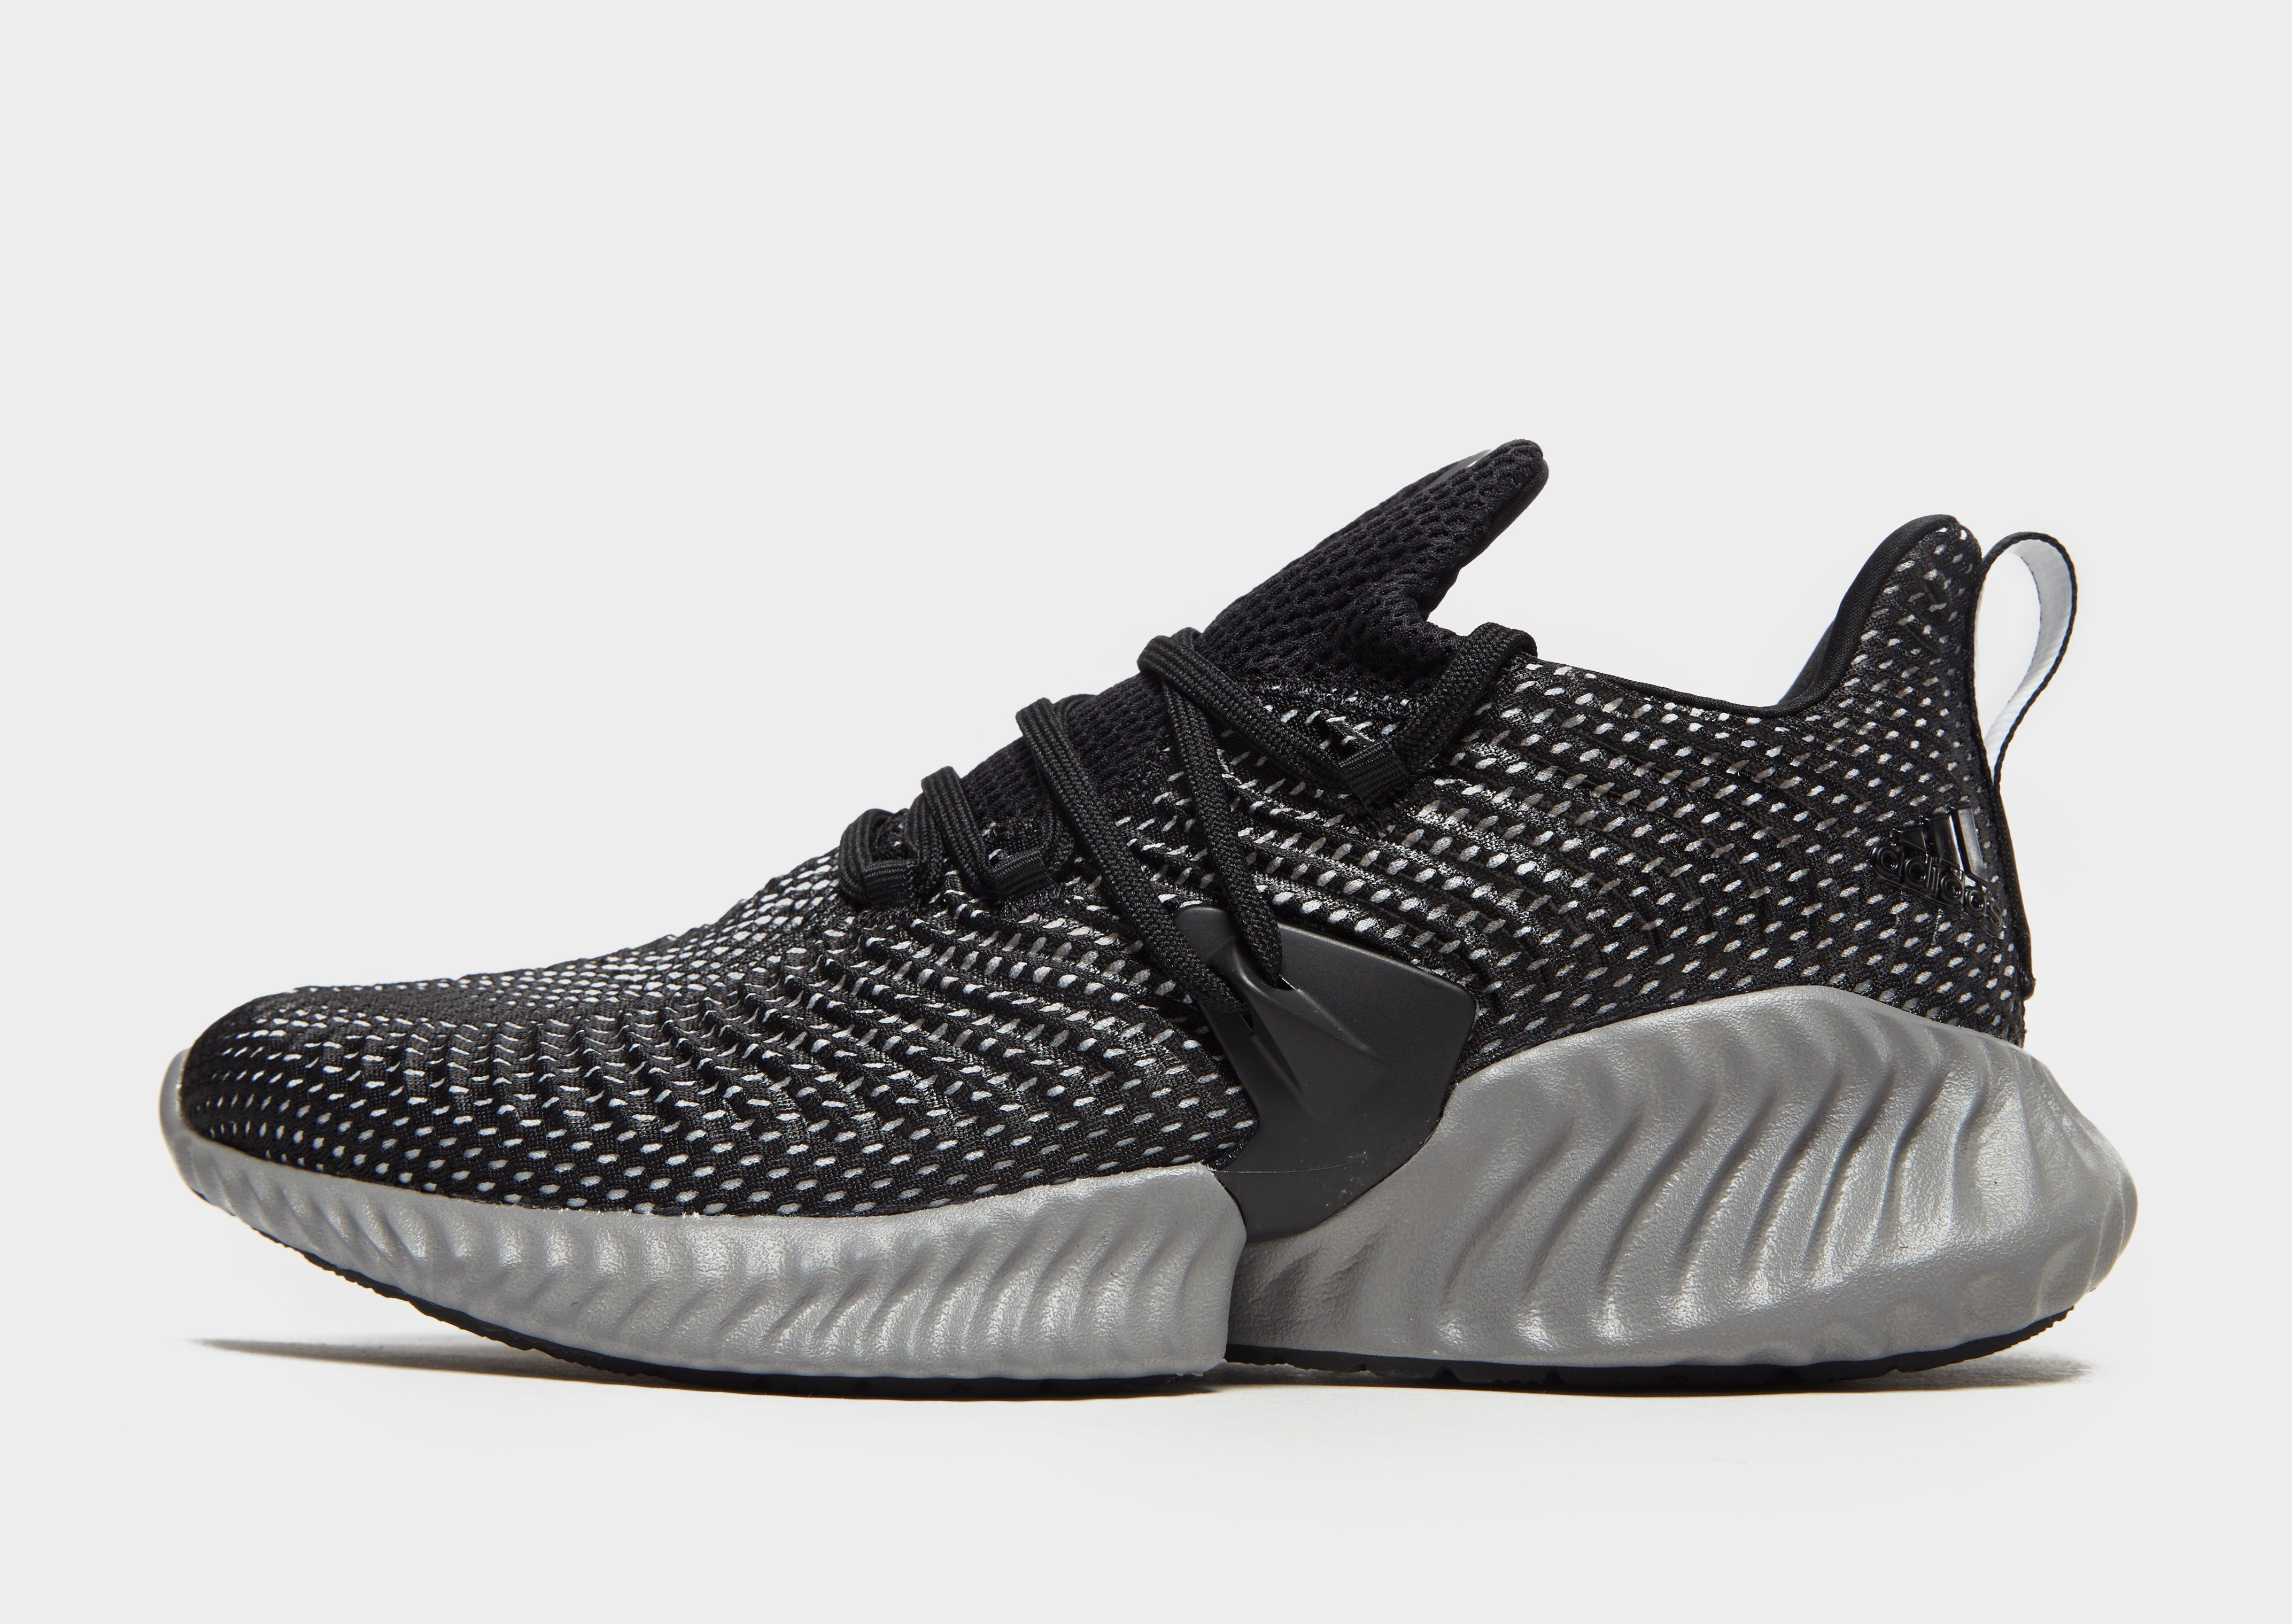 2d2662d09c9a4 ADIDAS Alphabounce Instinct Shoes